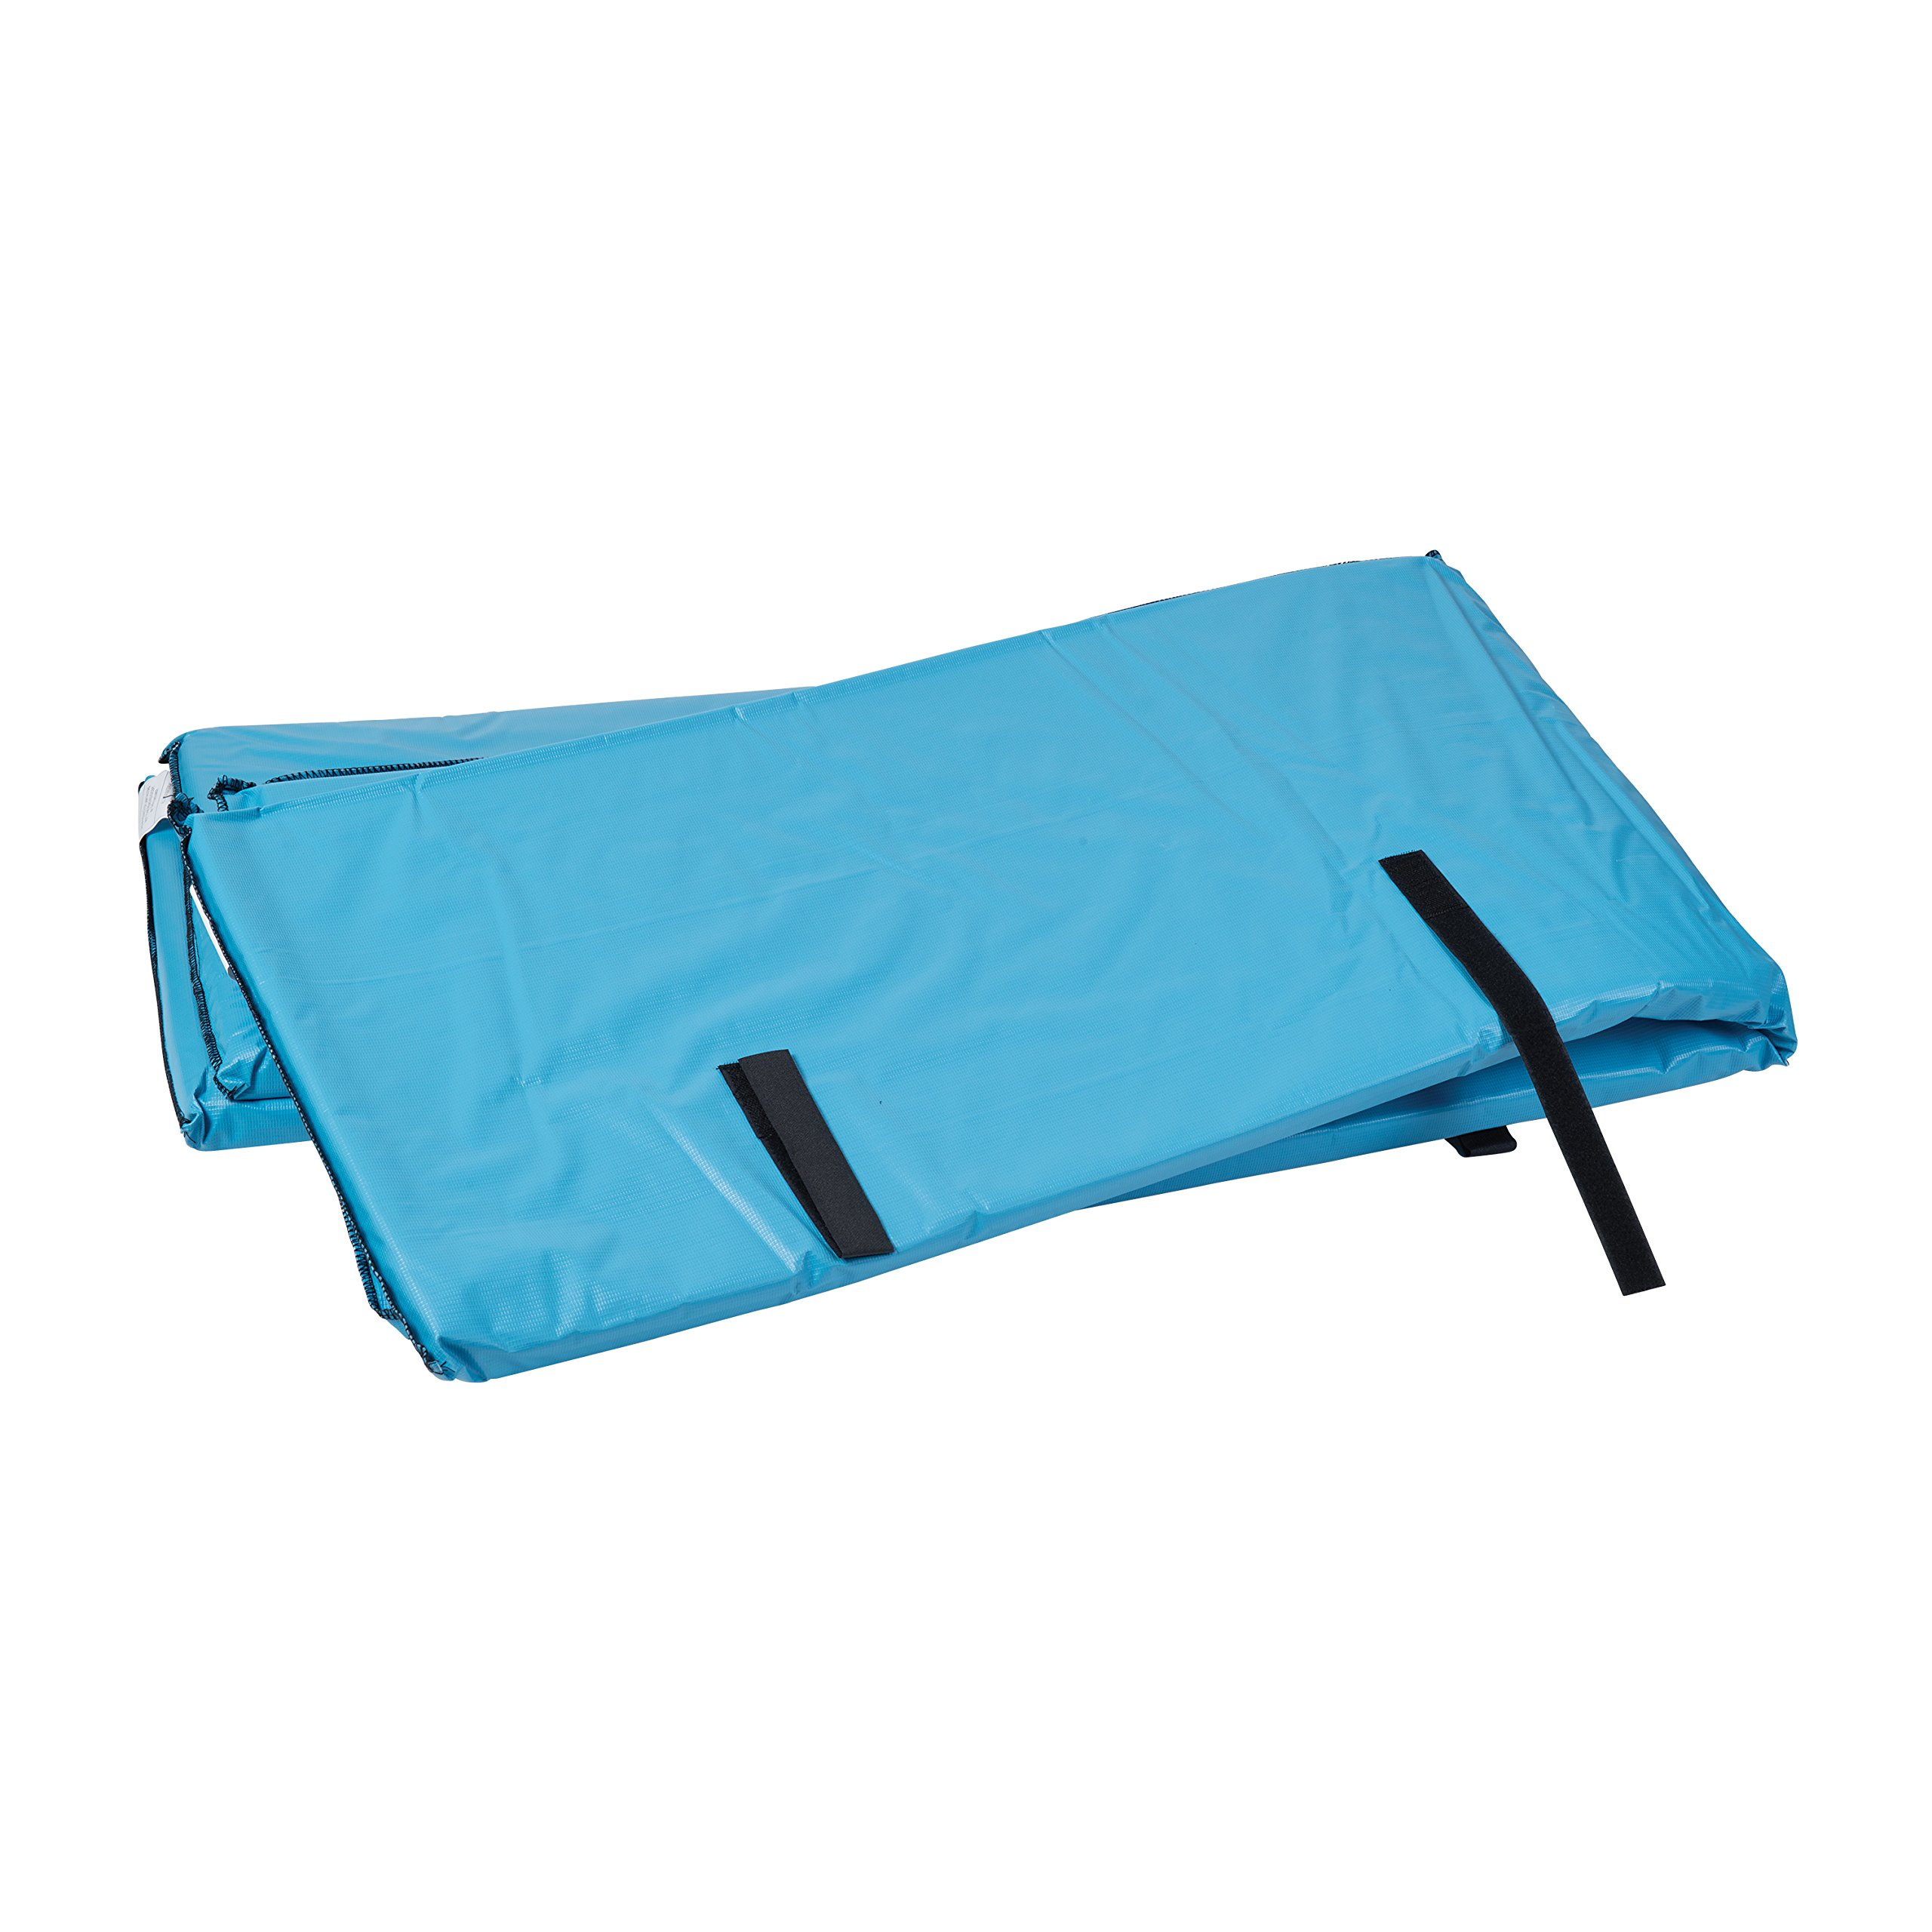 Duro-Med Bed Bumper Pads with Non-Allergenic Cover, Vinyl Bed Rail Pads, 60 x 15 x 0.5 inches, 2 Bed Rail Covers, Blue